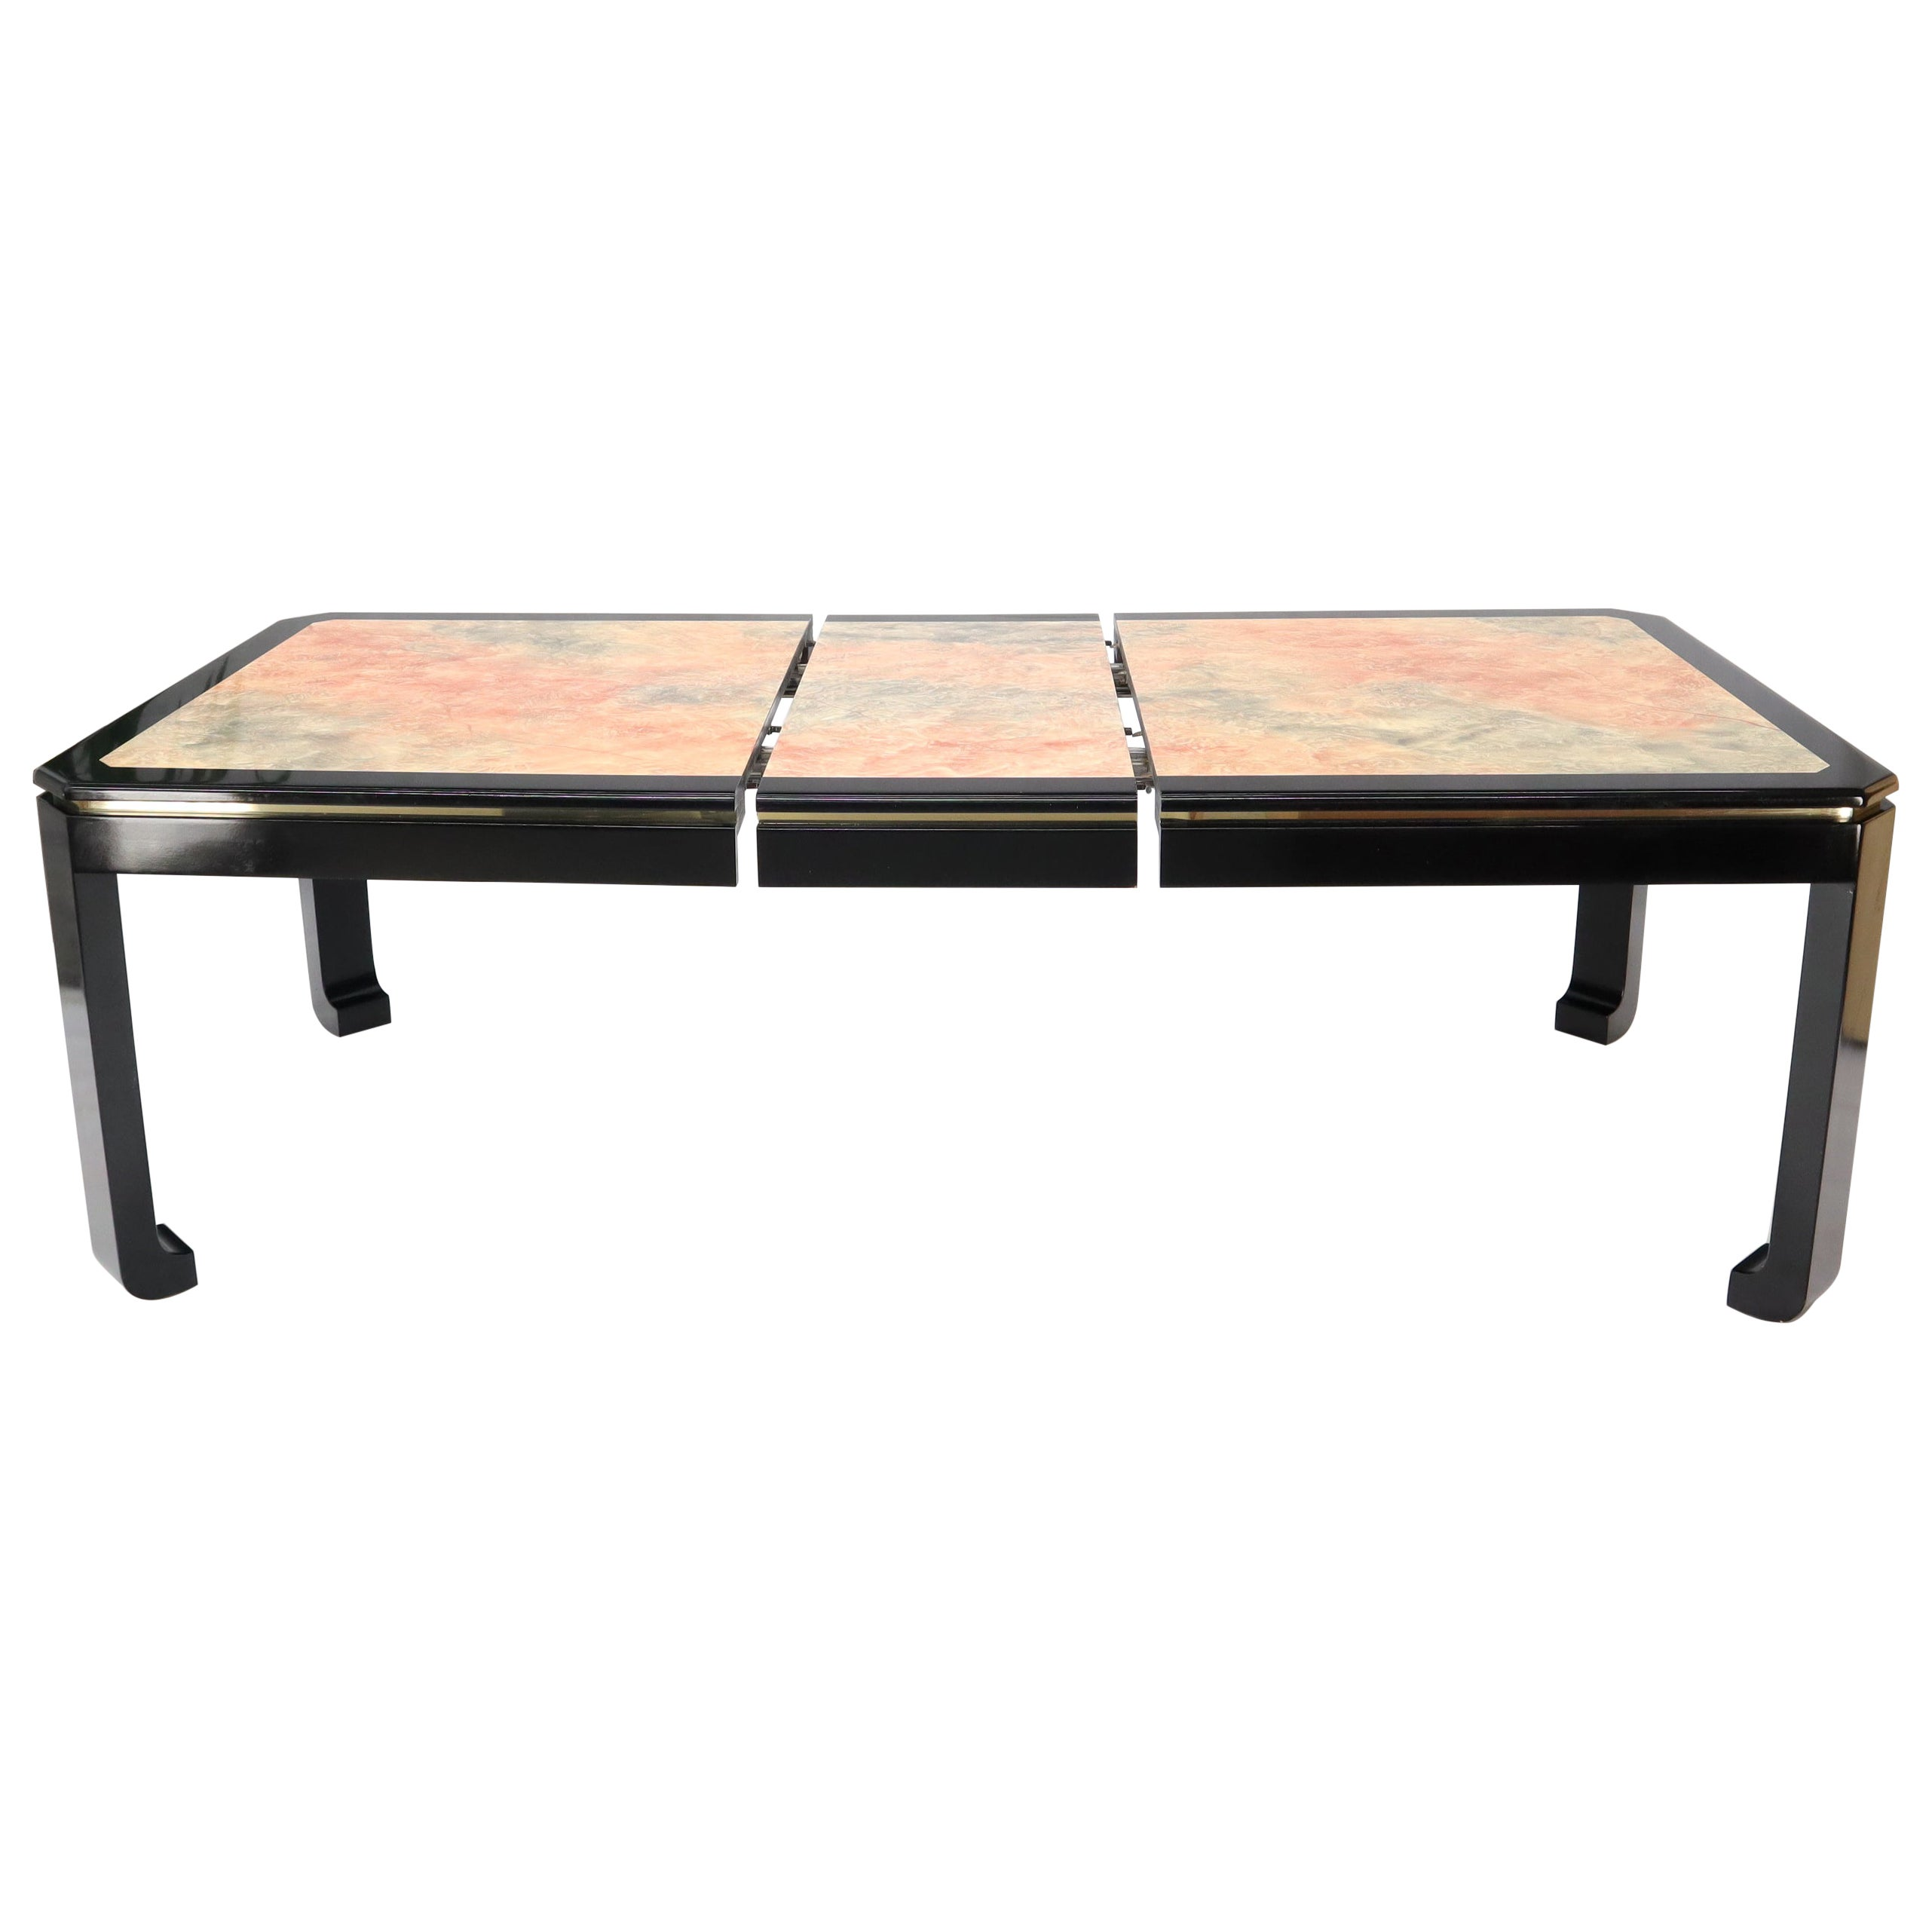 Black Lacquer Faux Stone Marble Finish Dining Table with Leave Extension Board